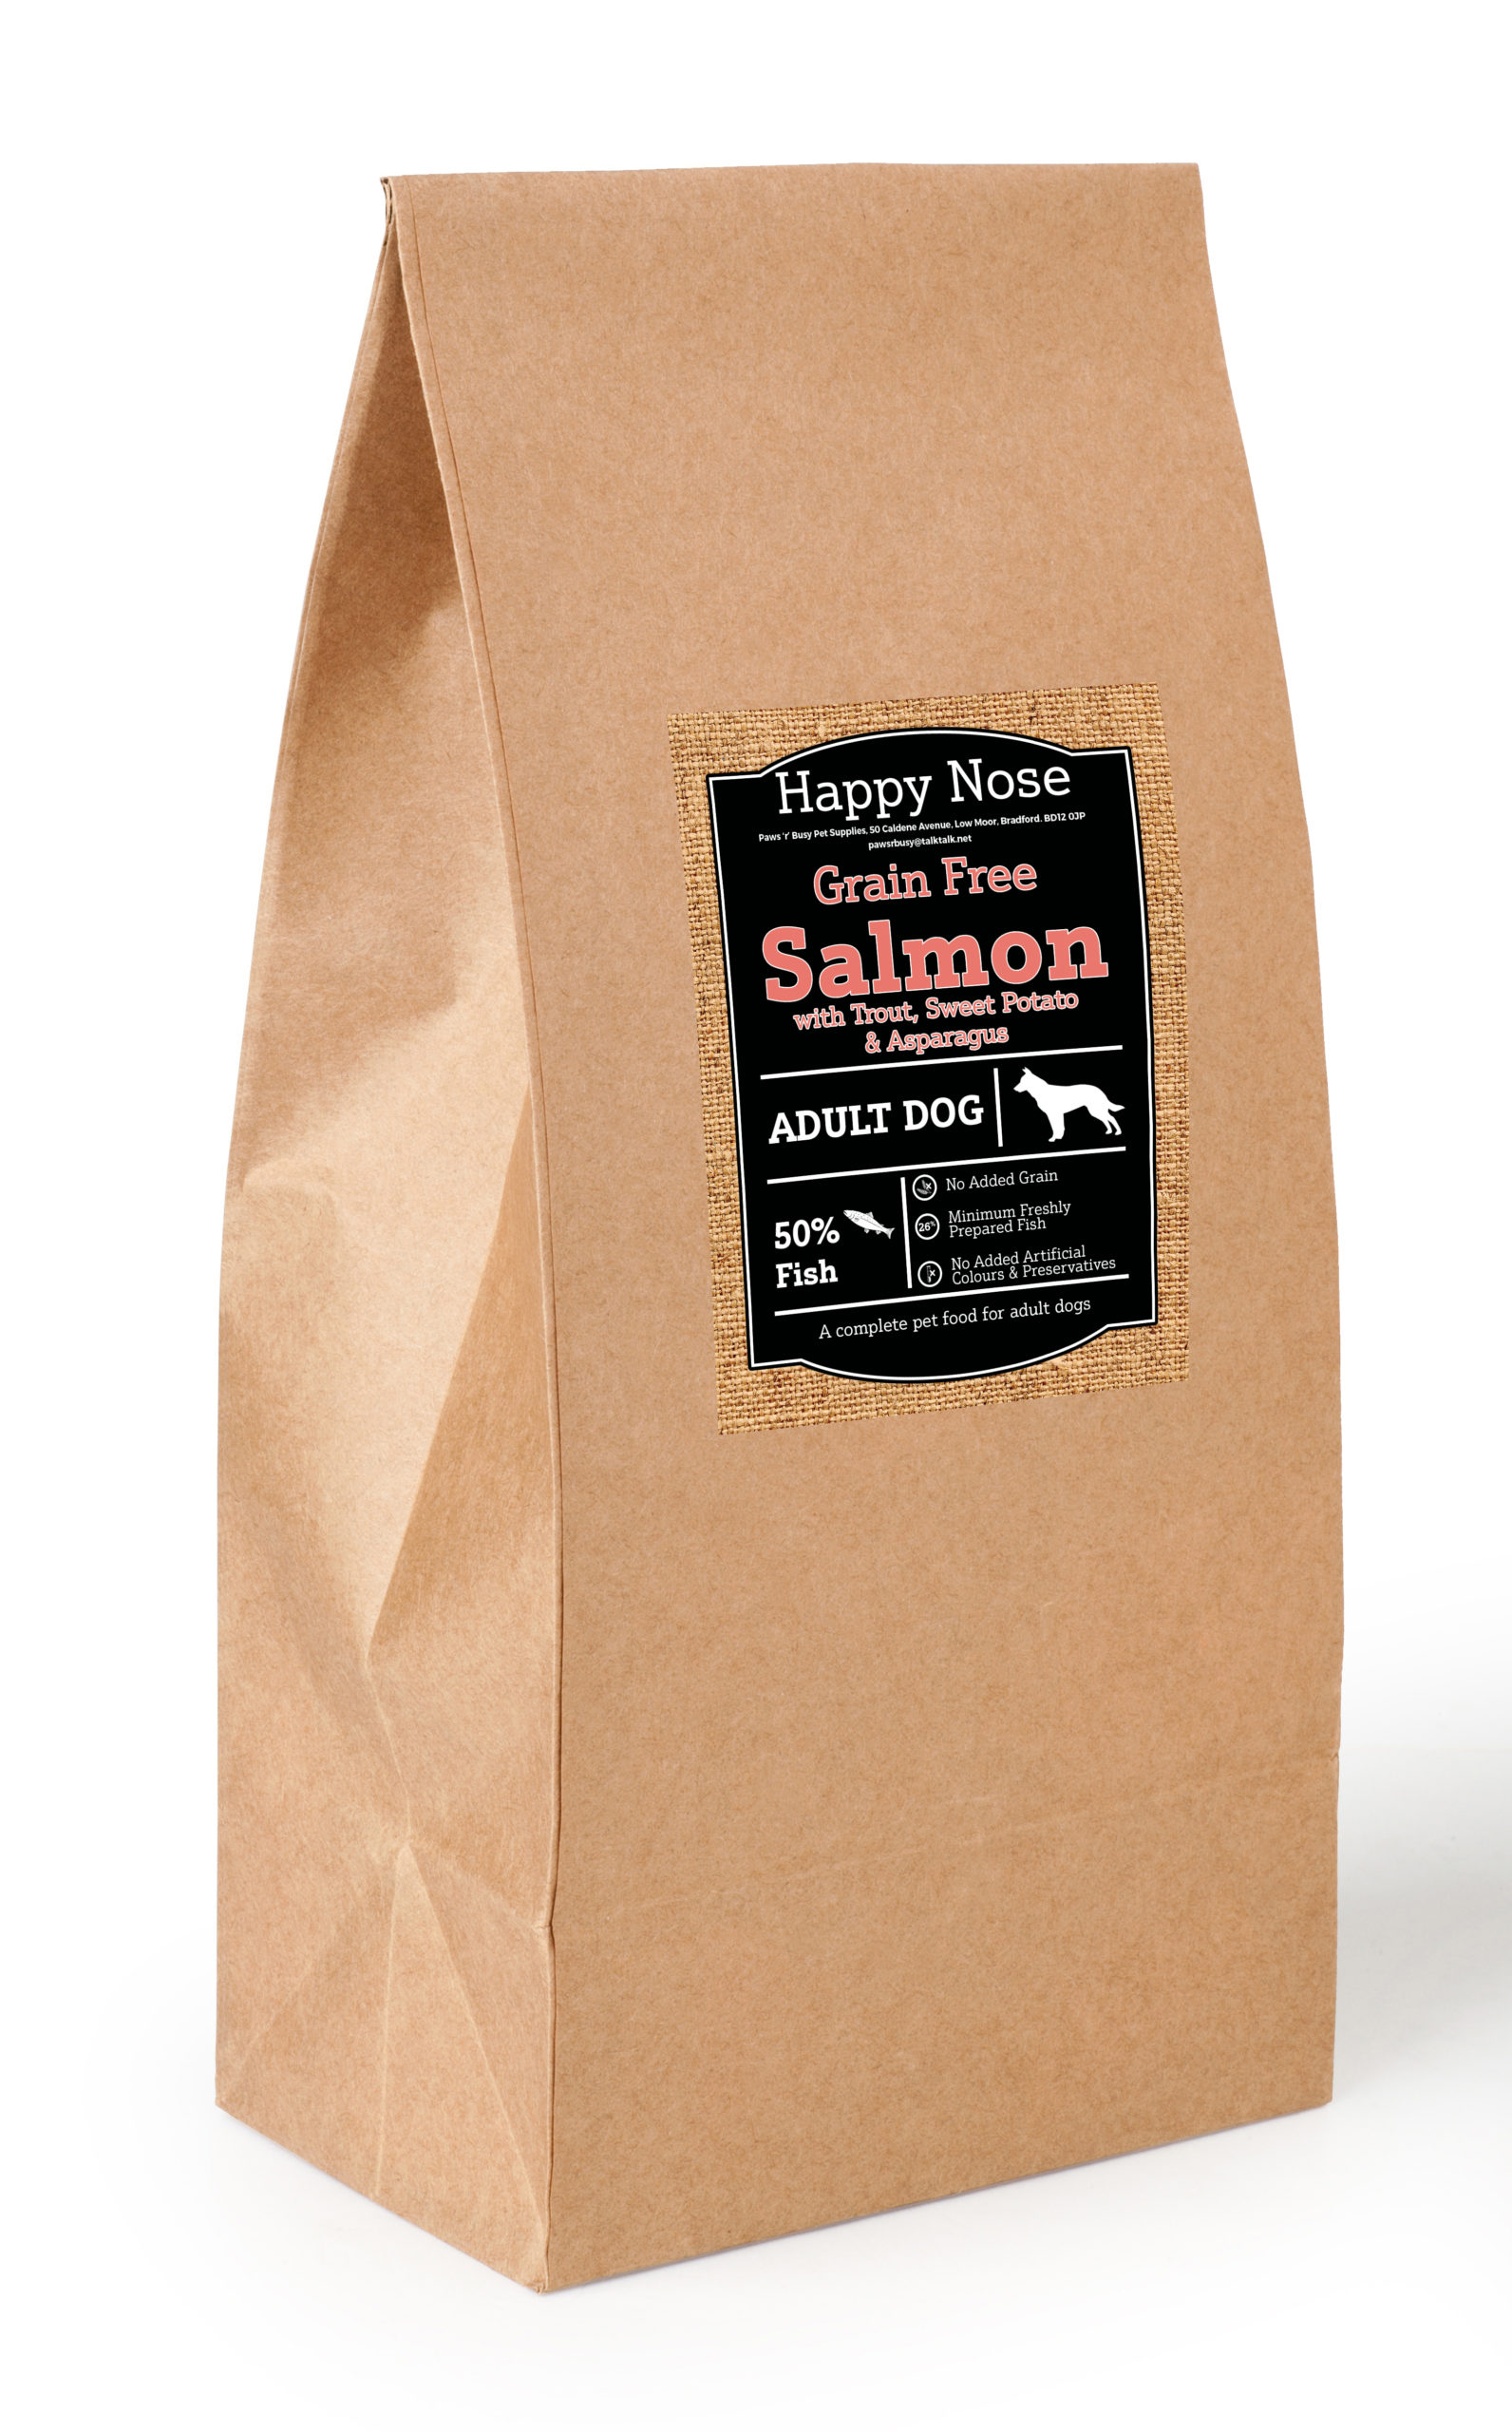 Salmon, Trout, Sweet Potato & Asparagus Adult Dog Food